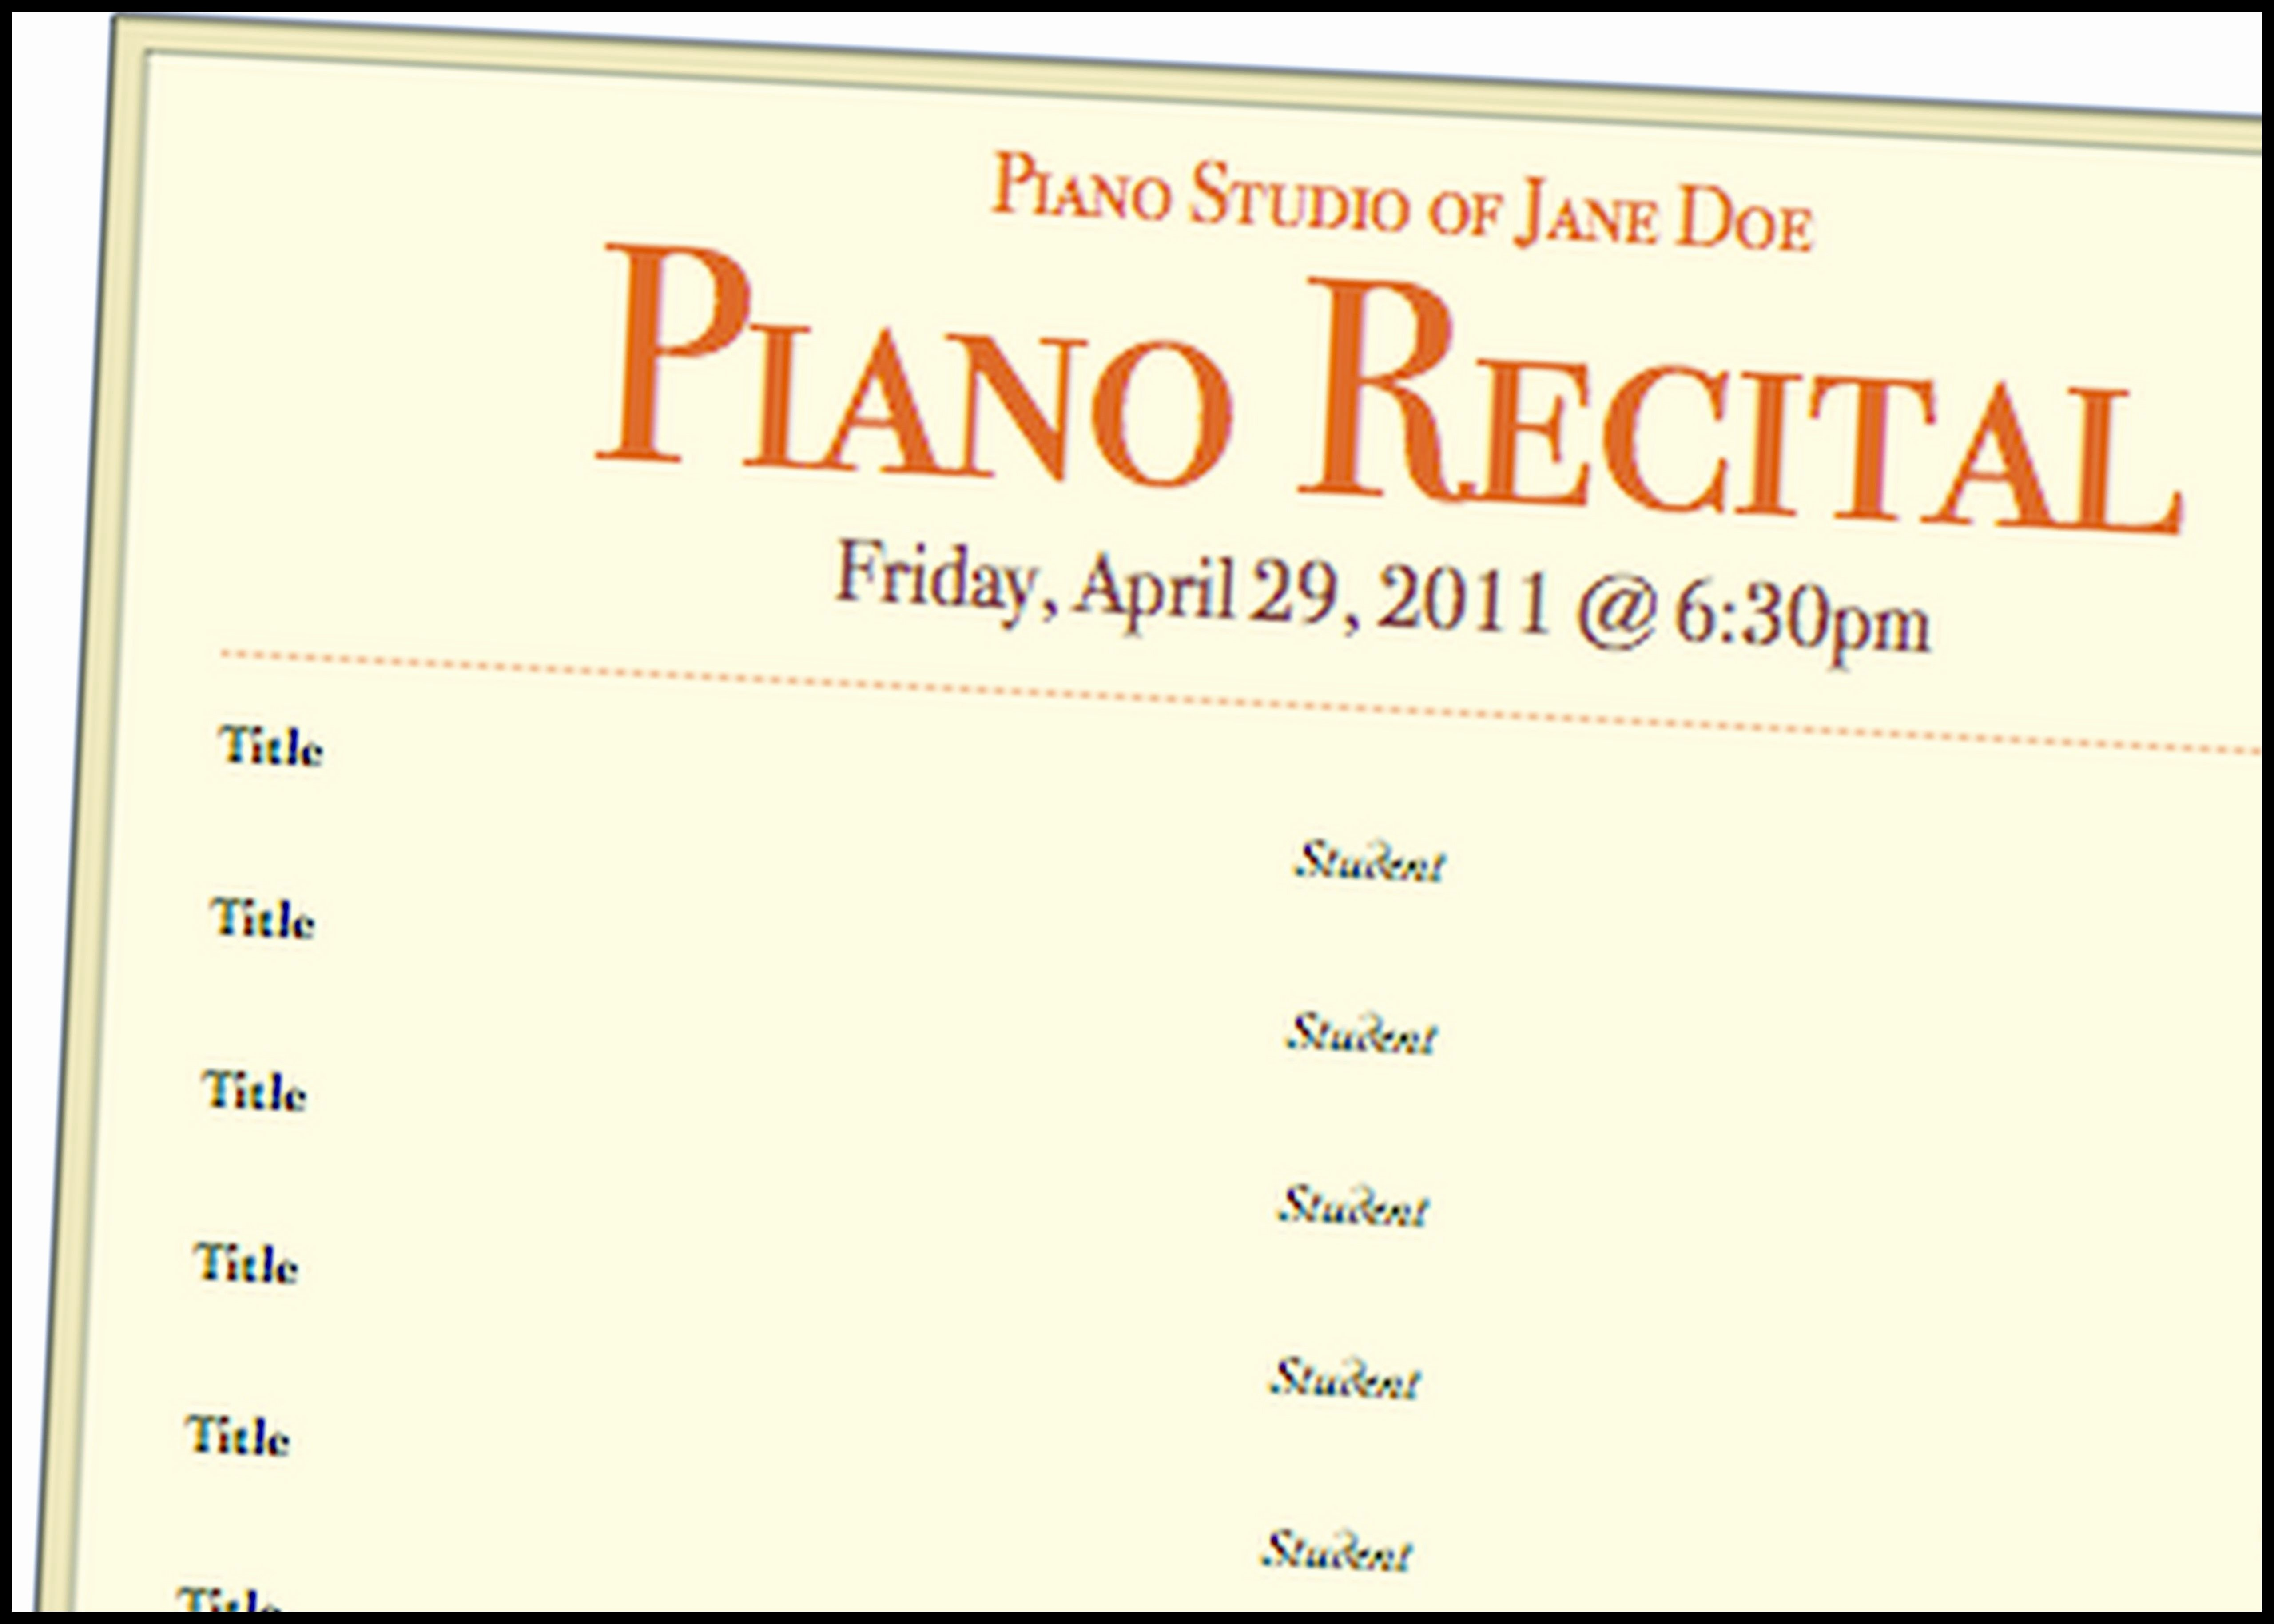 Concert Program Template Free Beautiful A Basic Piano Recital Program Template for Free Music